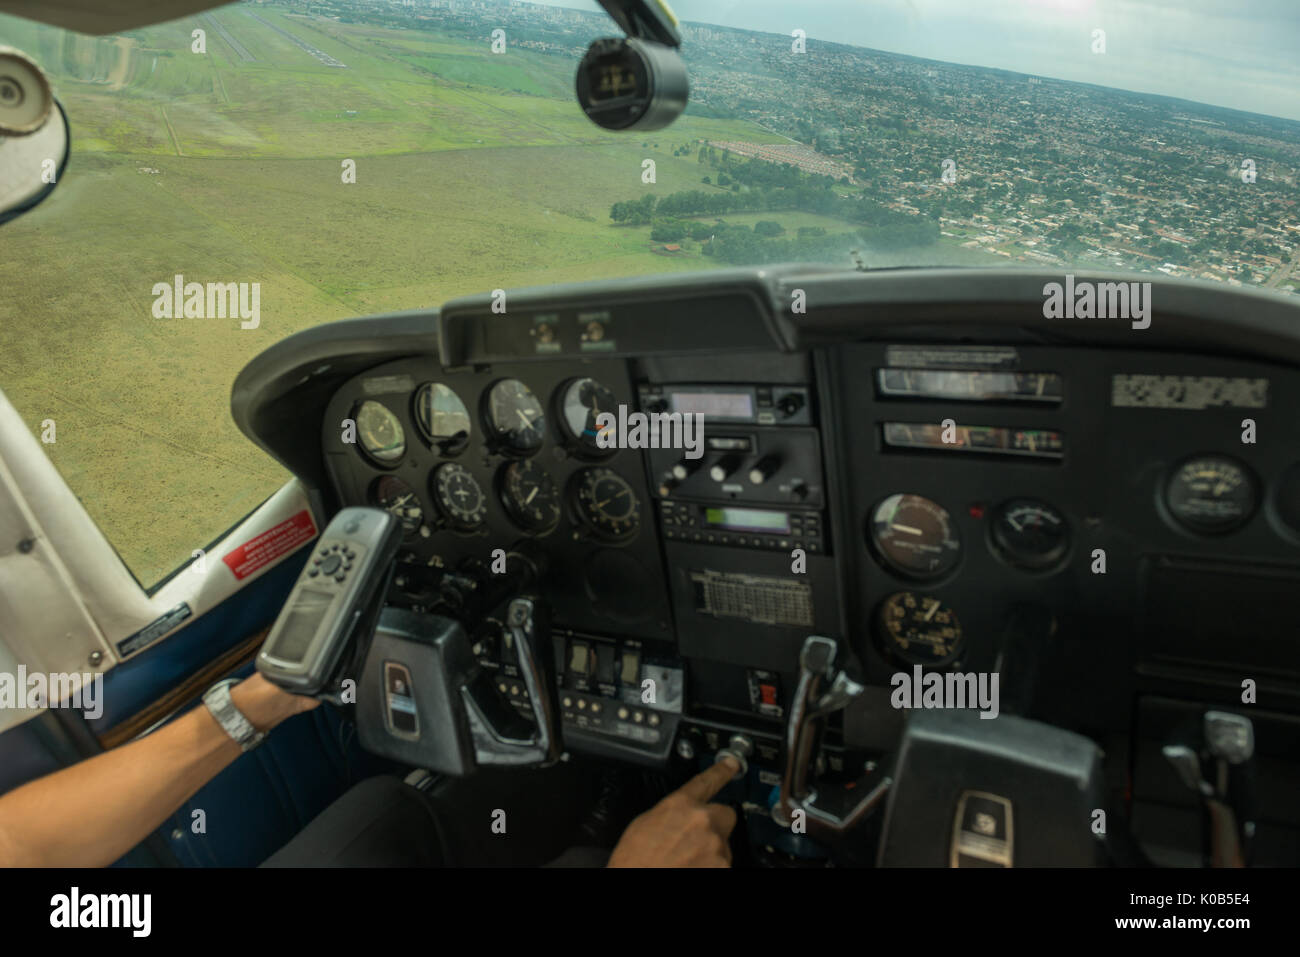 Cessna Airplane on final approach to Campo Grande Airport, Brazil - Stock Image